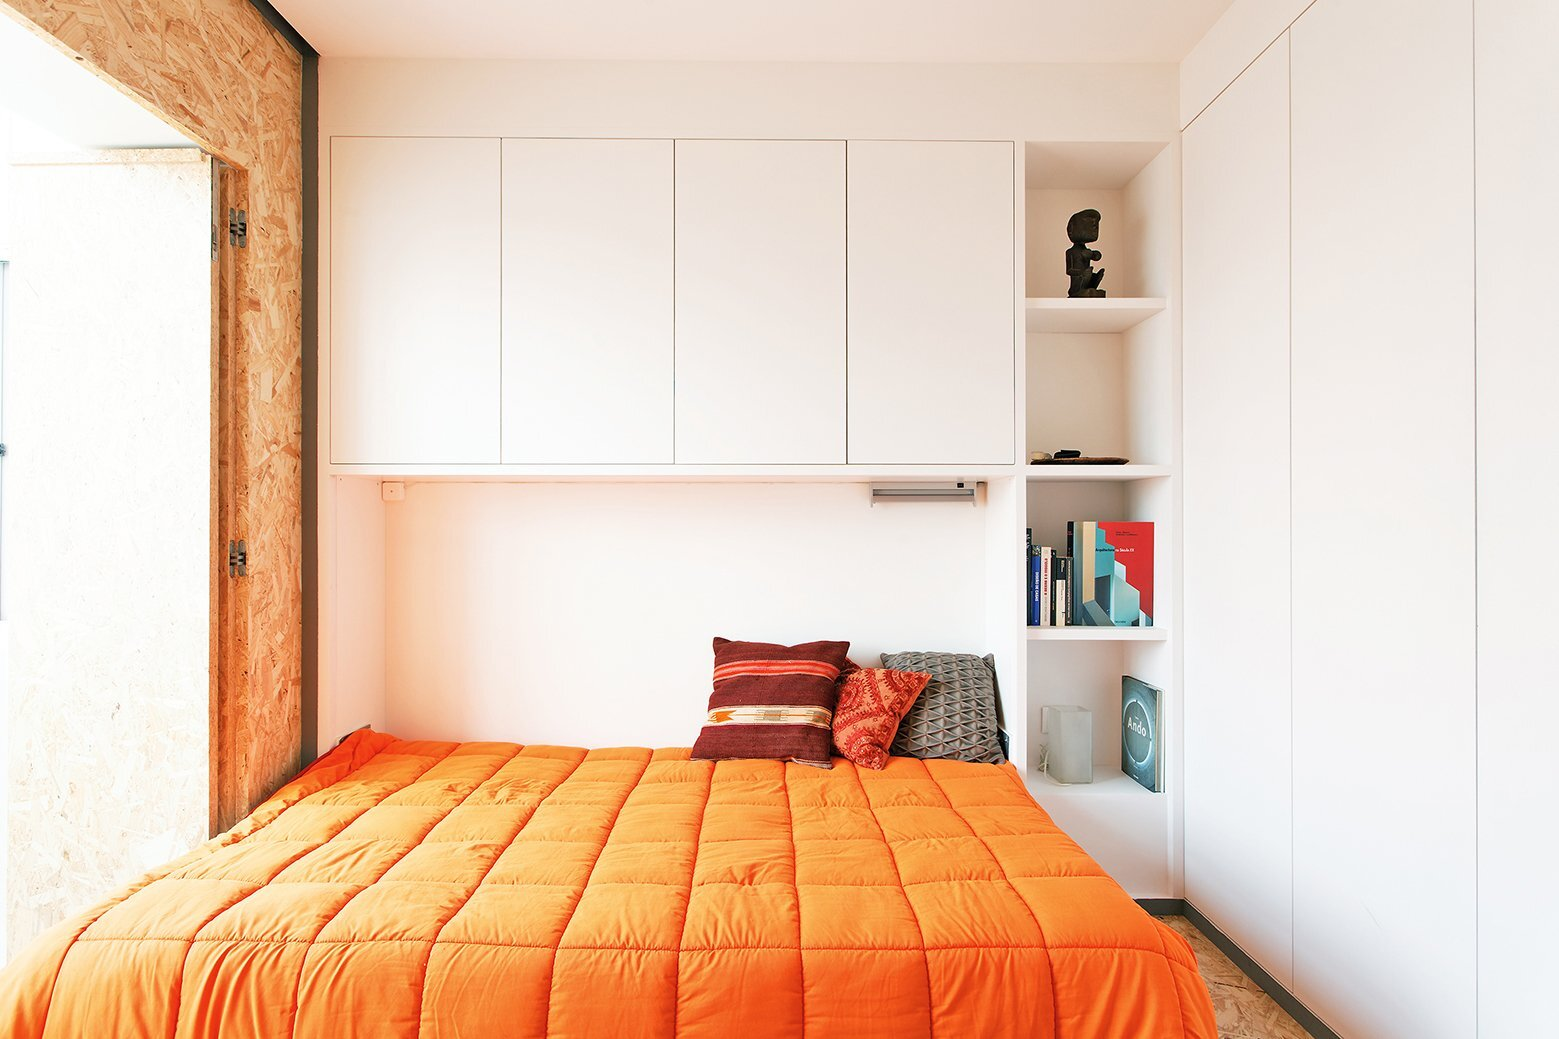 Xadrez apartment small apartment uma collective portugal bedroom 2 humble homes